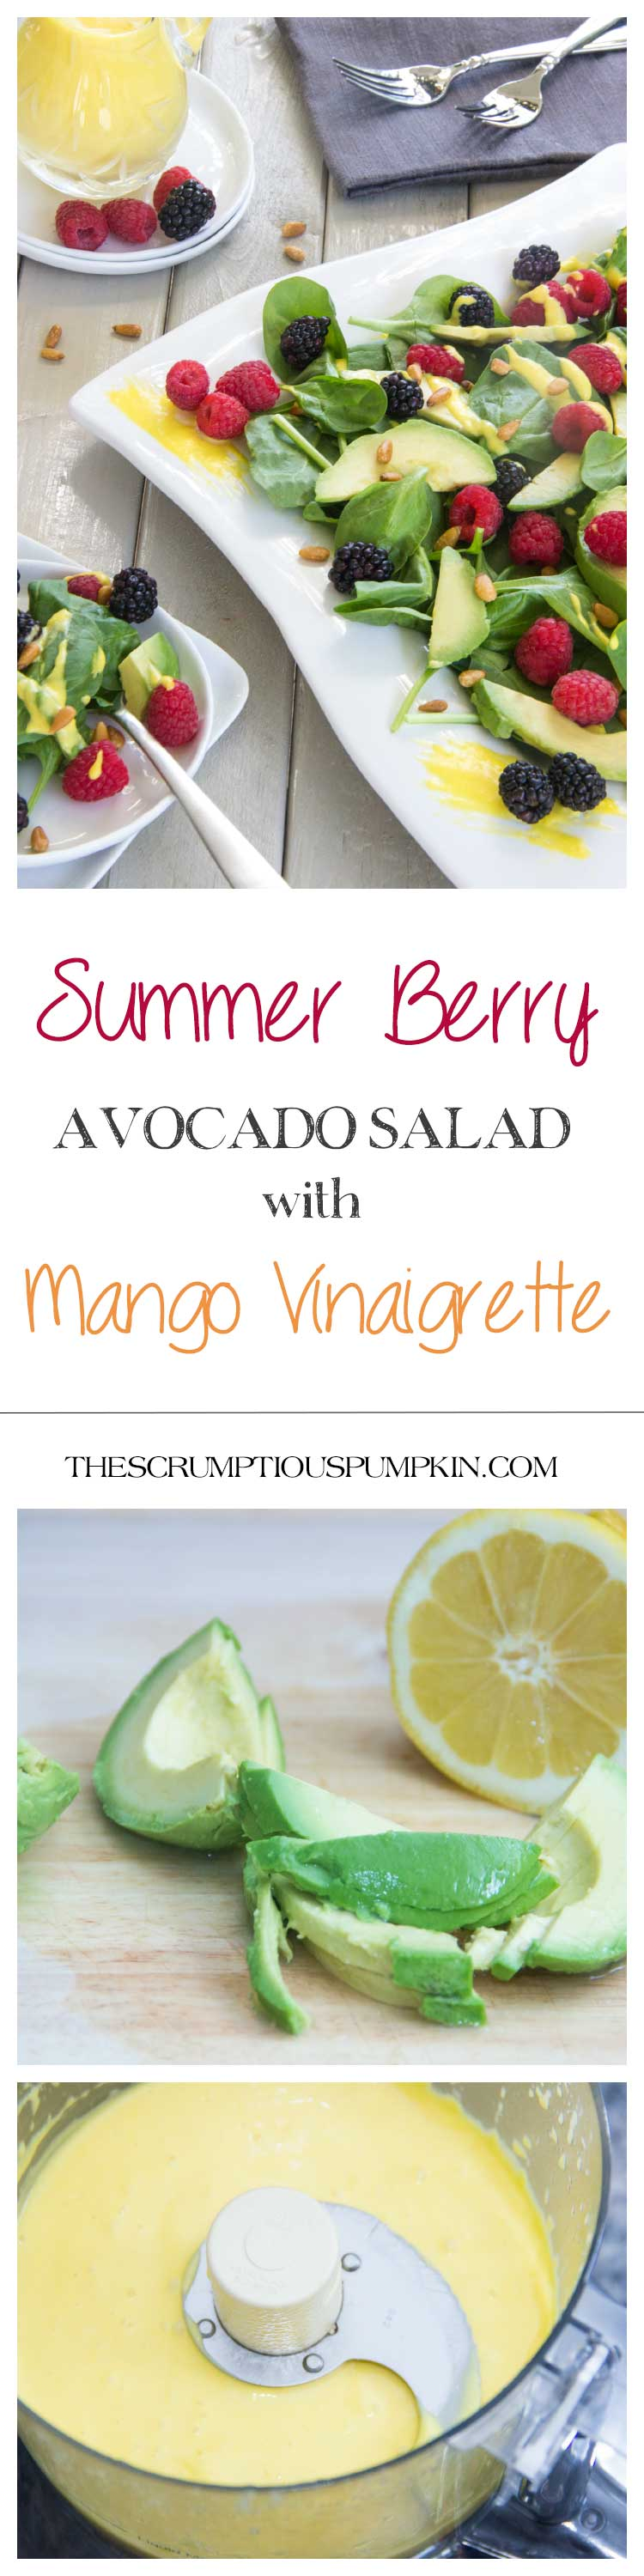 Summer-Berry-Avocado-Salad-with-Mango-Vinaigrette